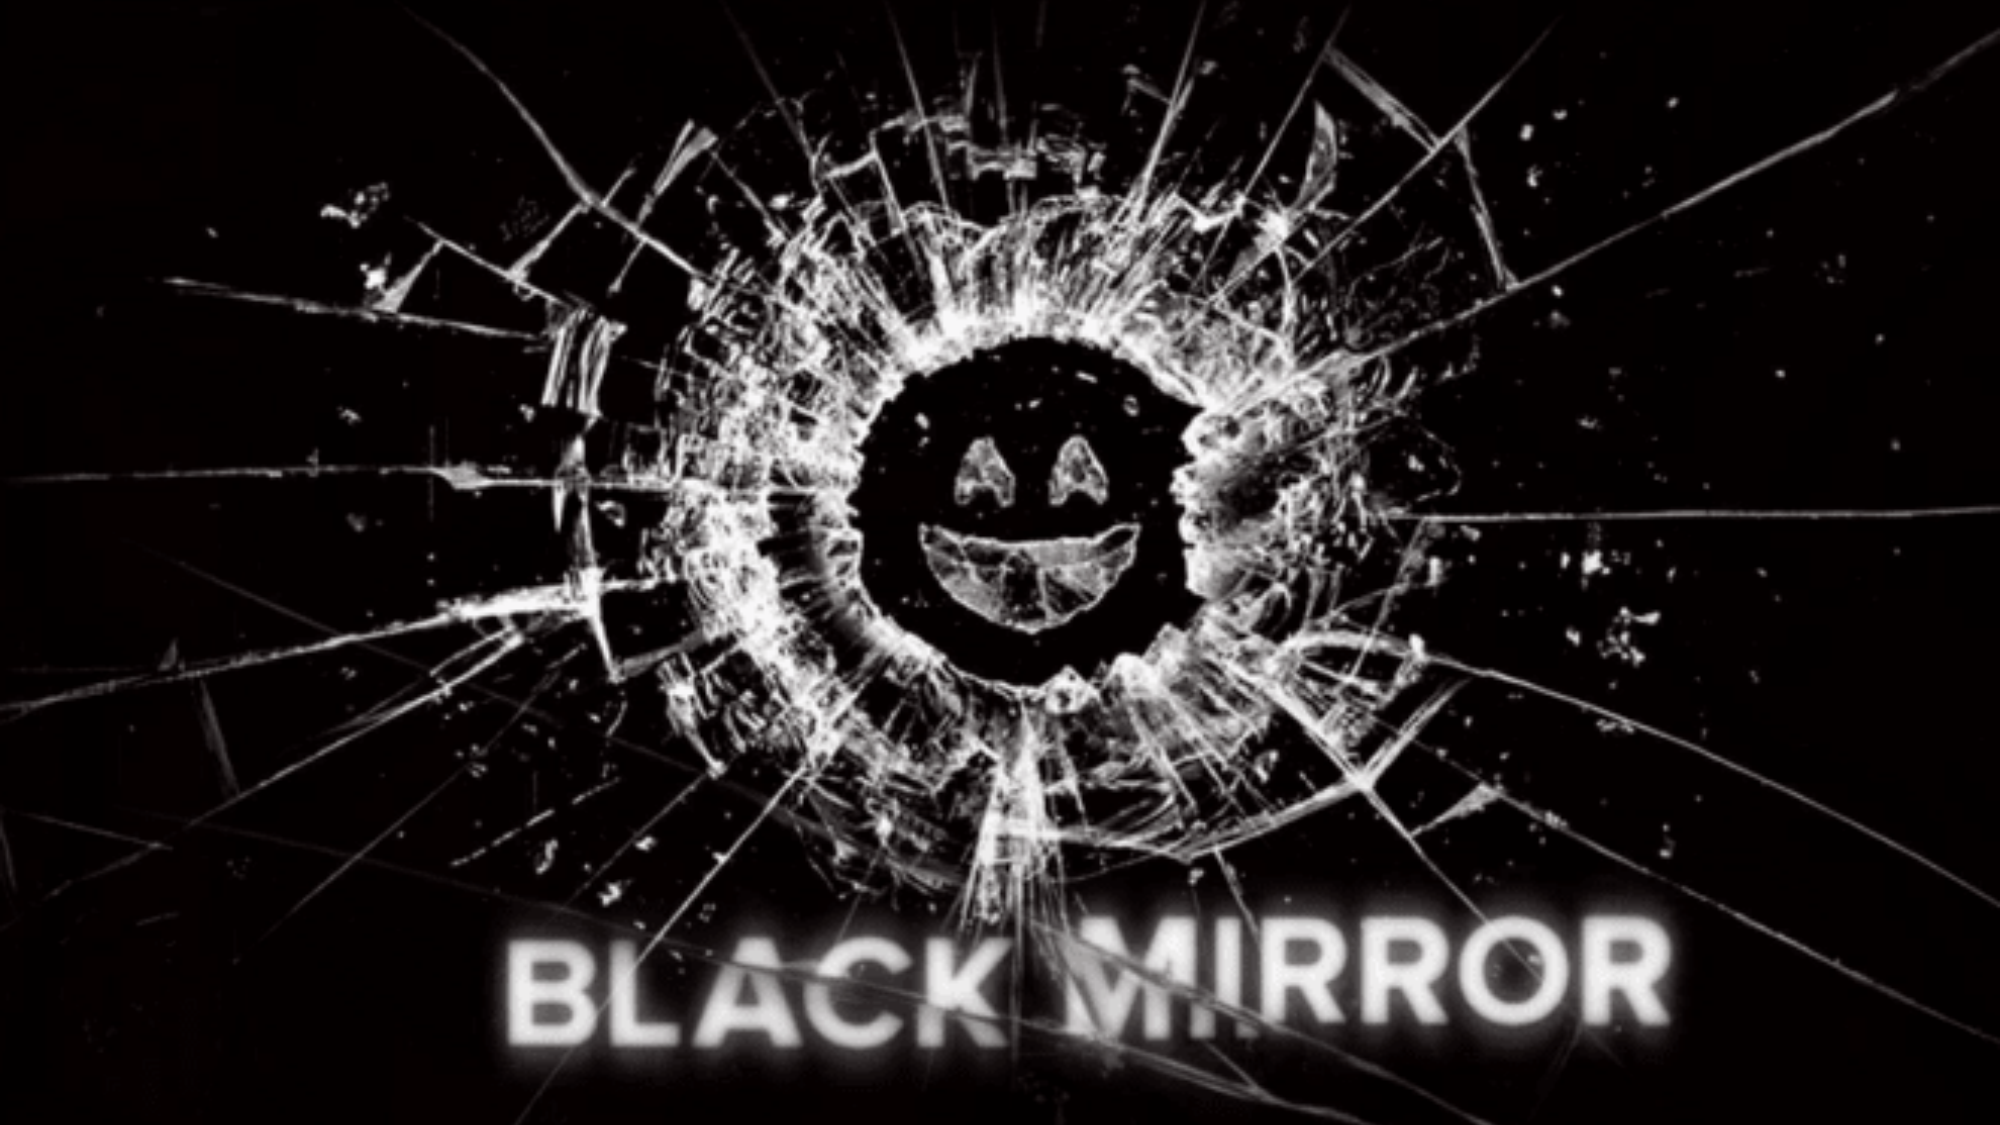 Black Mirror season 6 release date renewal